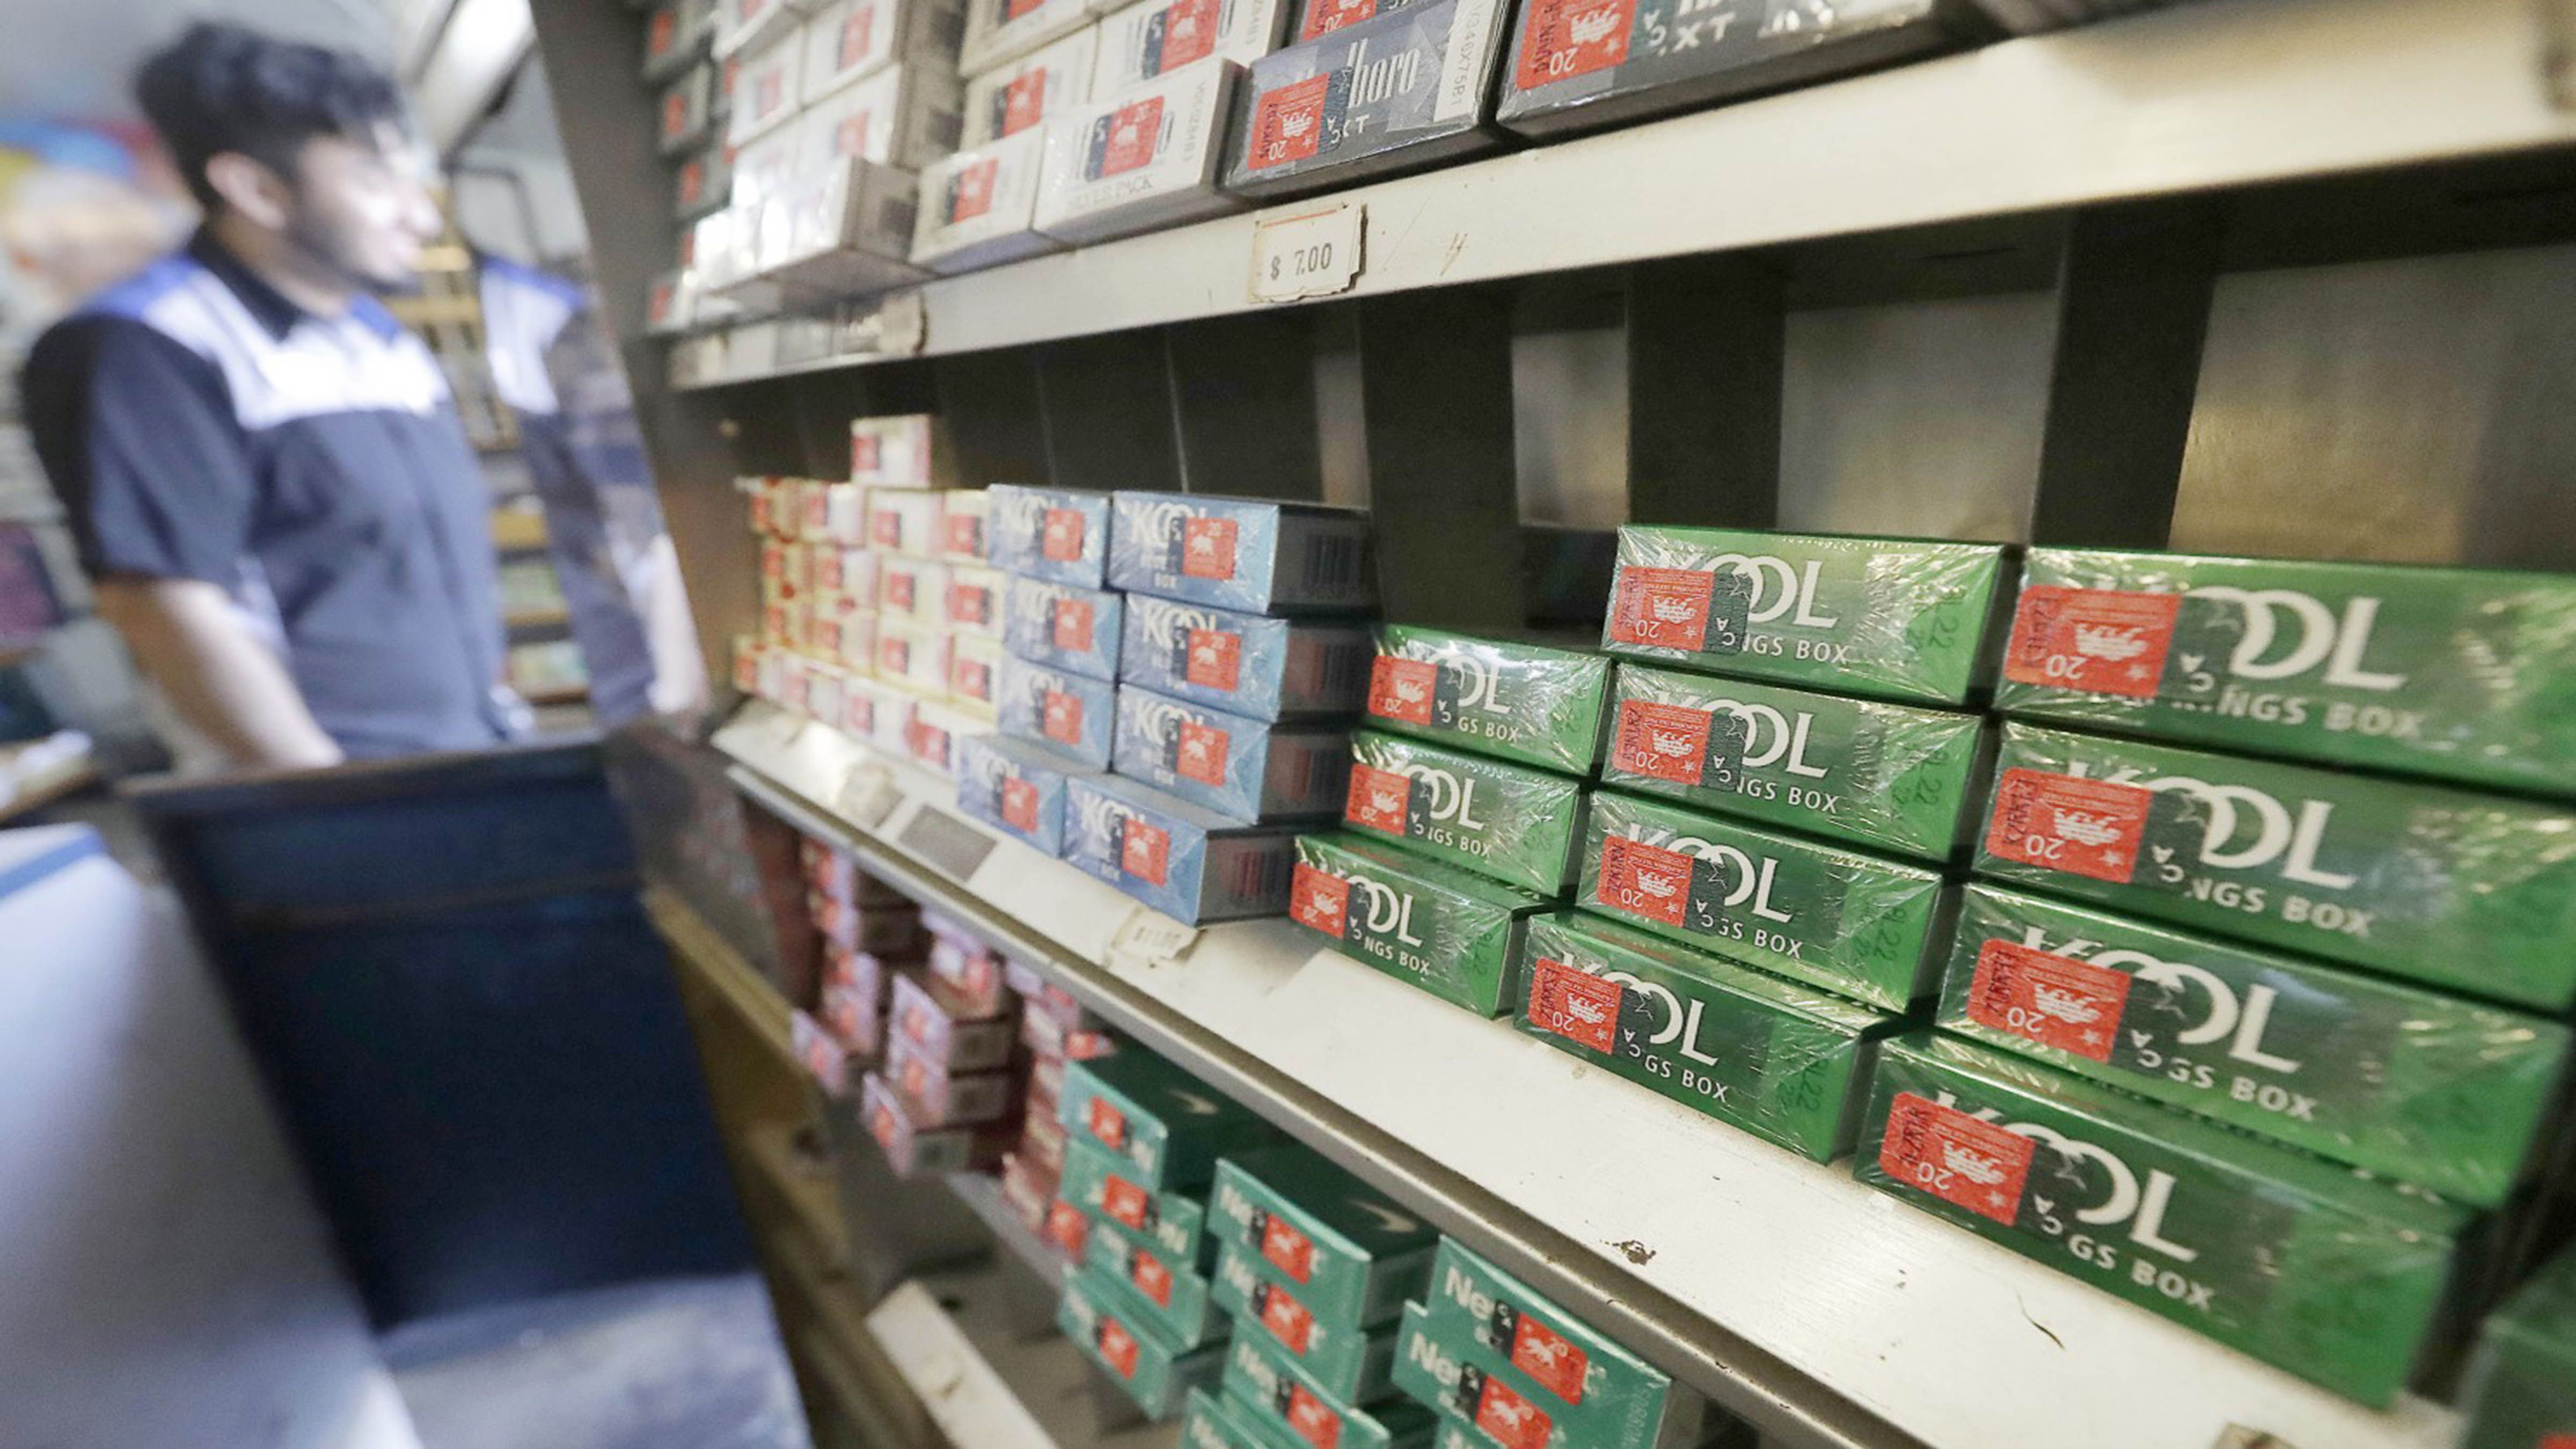 Saving their health and lives; menthol cigarette ban targets Black Americans' favorite smoke